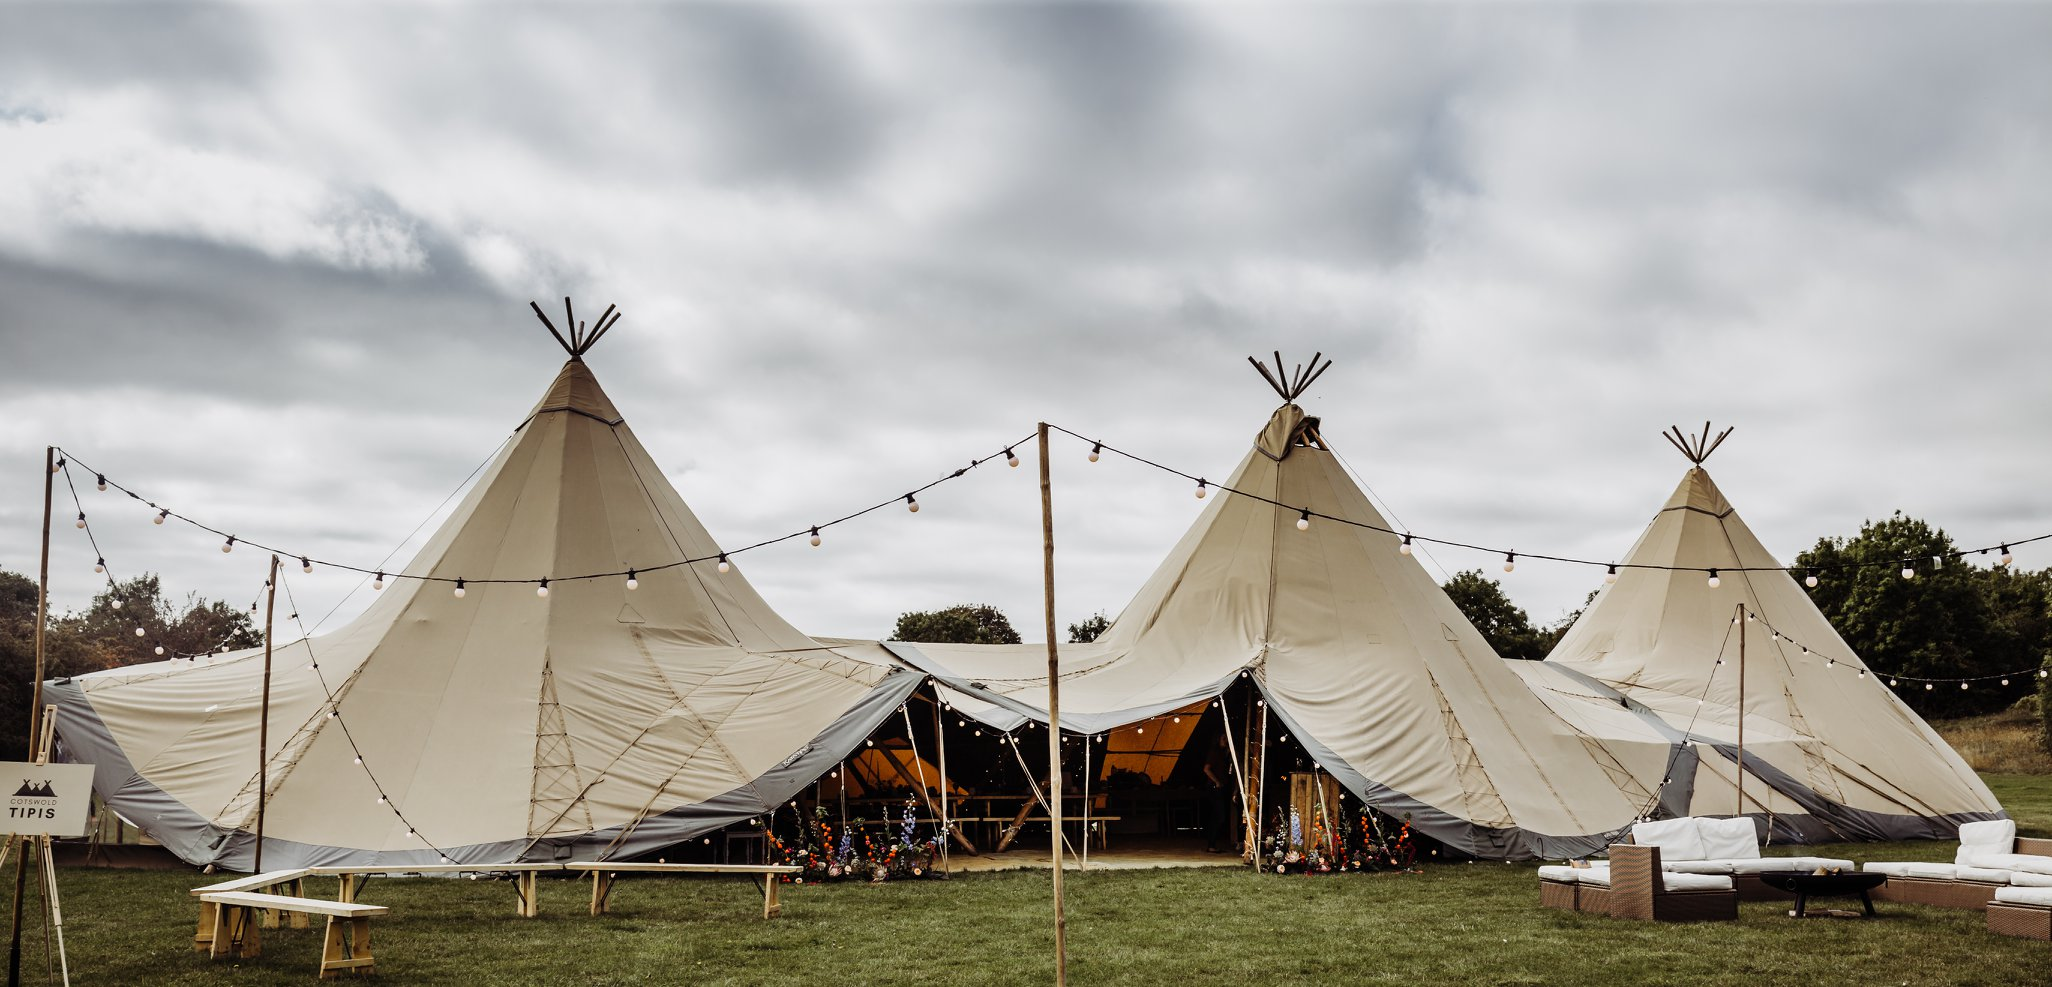 Three connected tipis with central entrance, outdoor seating area with fire pit to the right and ceremony area to the left.